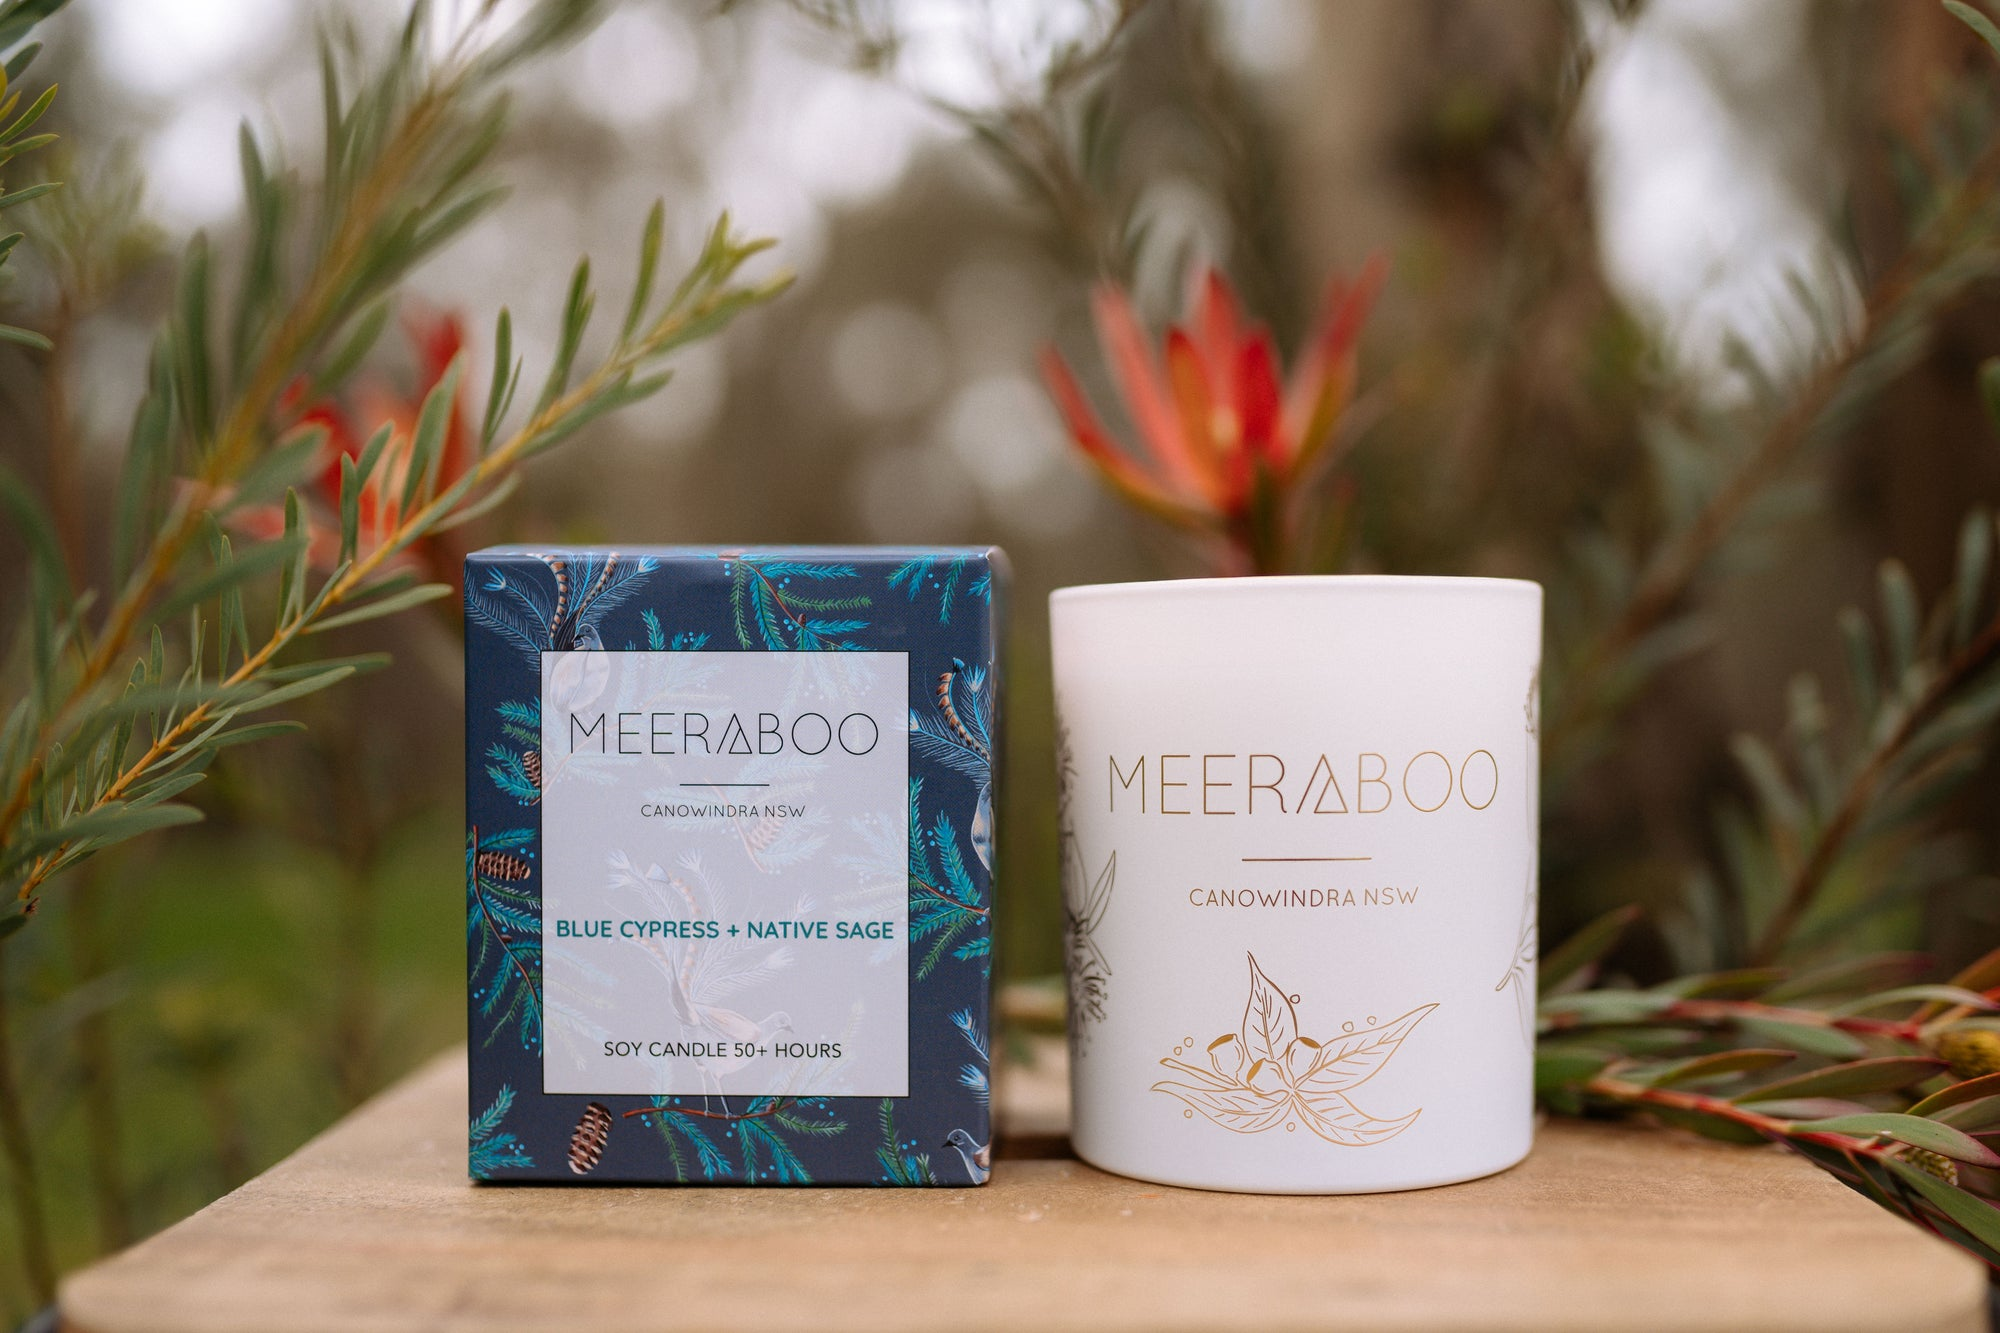 Behind the Scents / Blue Cypress + Native Sage